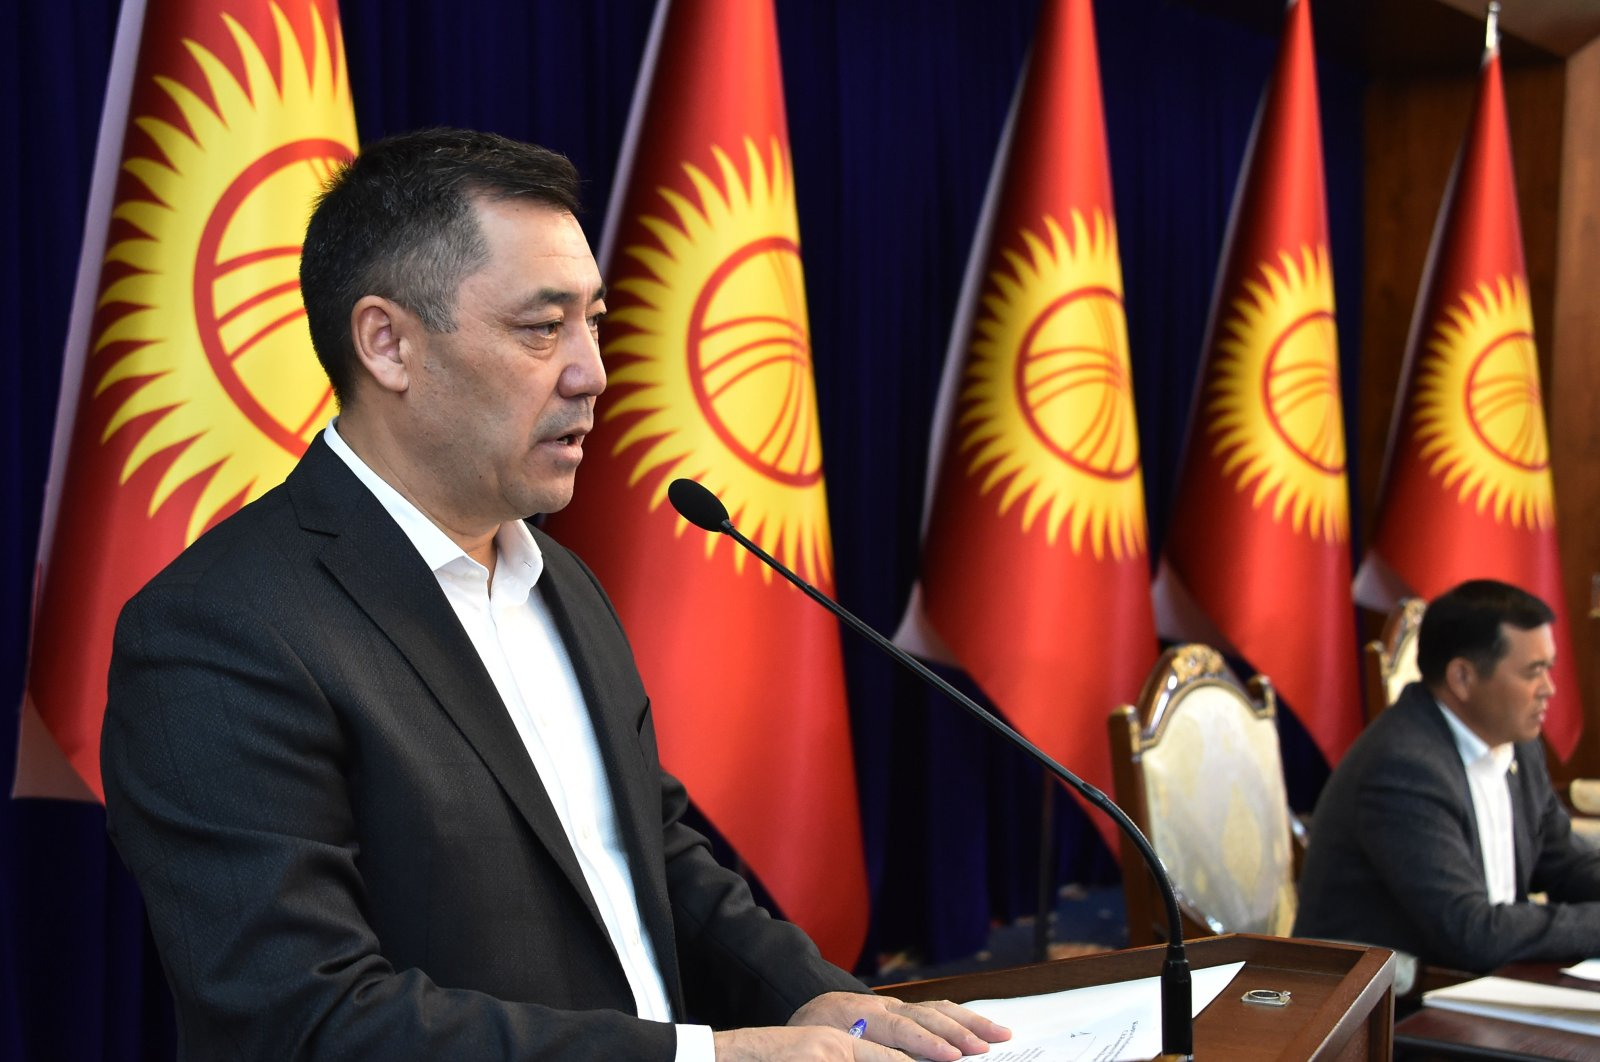 Kyrgyz Prime Minister Sadyr Zhaparov speaks at an extraordinary session of the Parliament at the Ala-Archa state residence, Bishkek, Oct. 10, 2020. (AFP Photo)